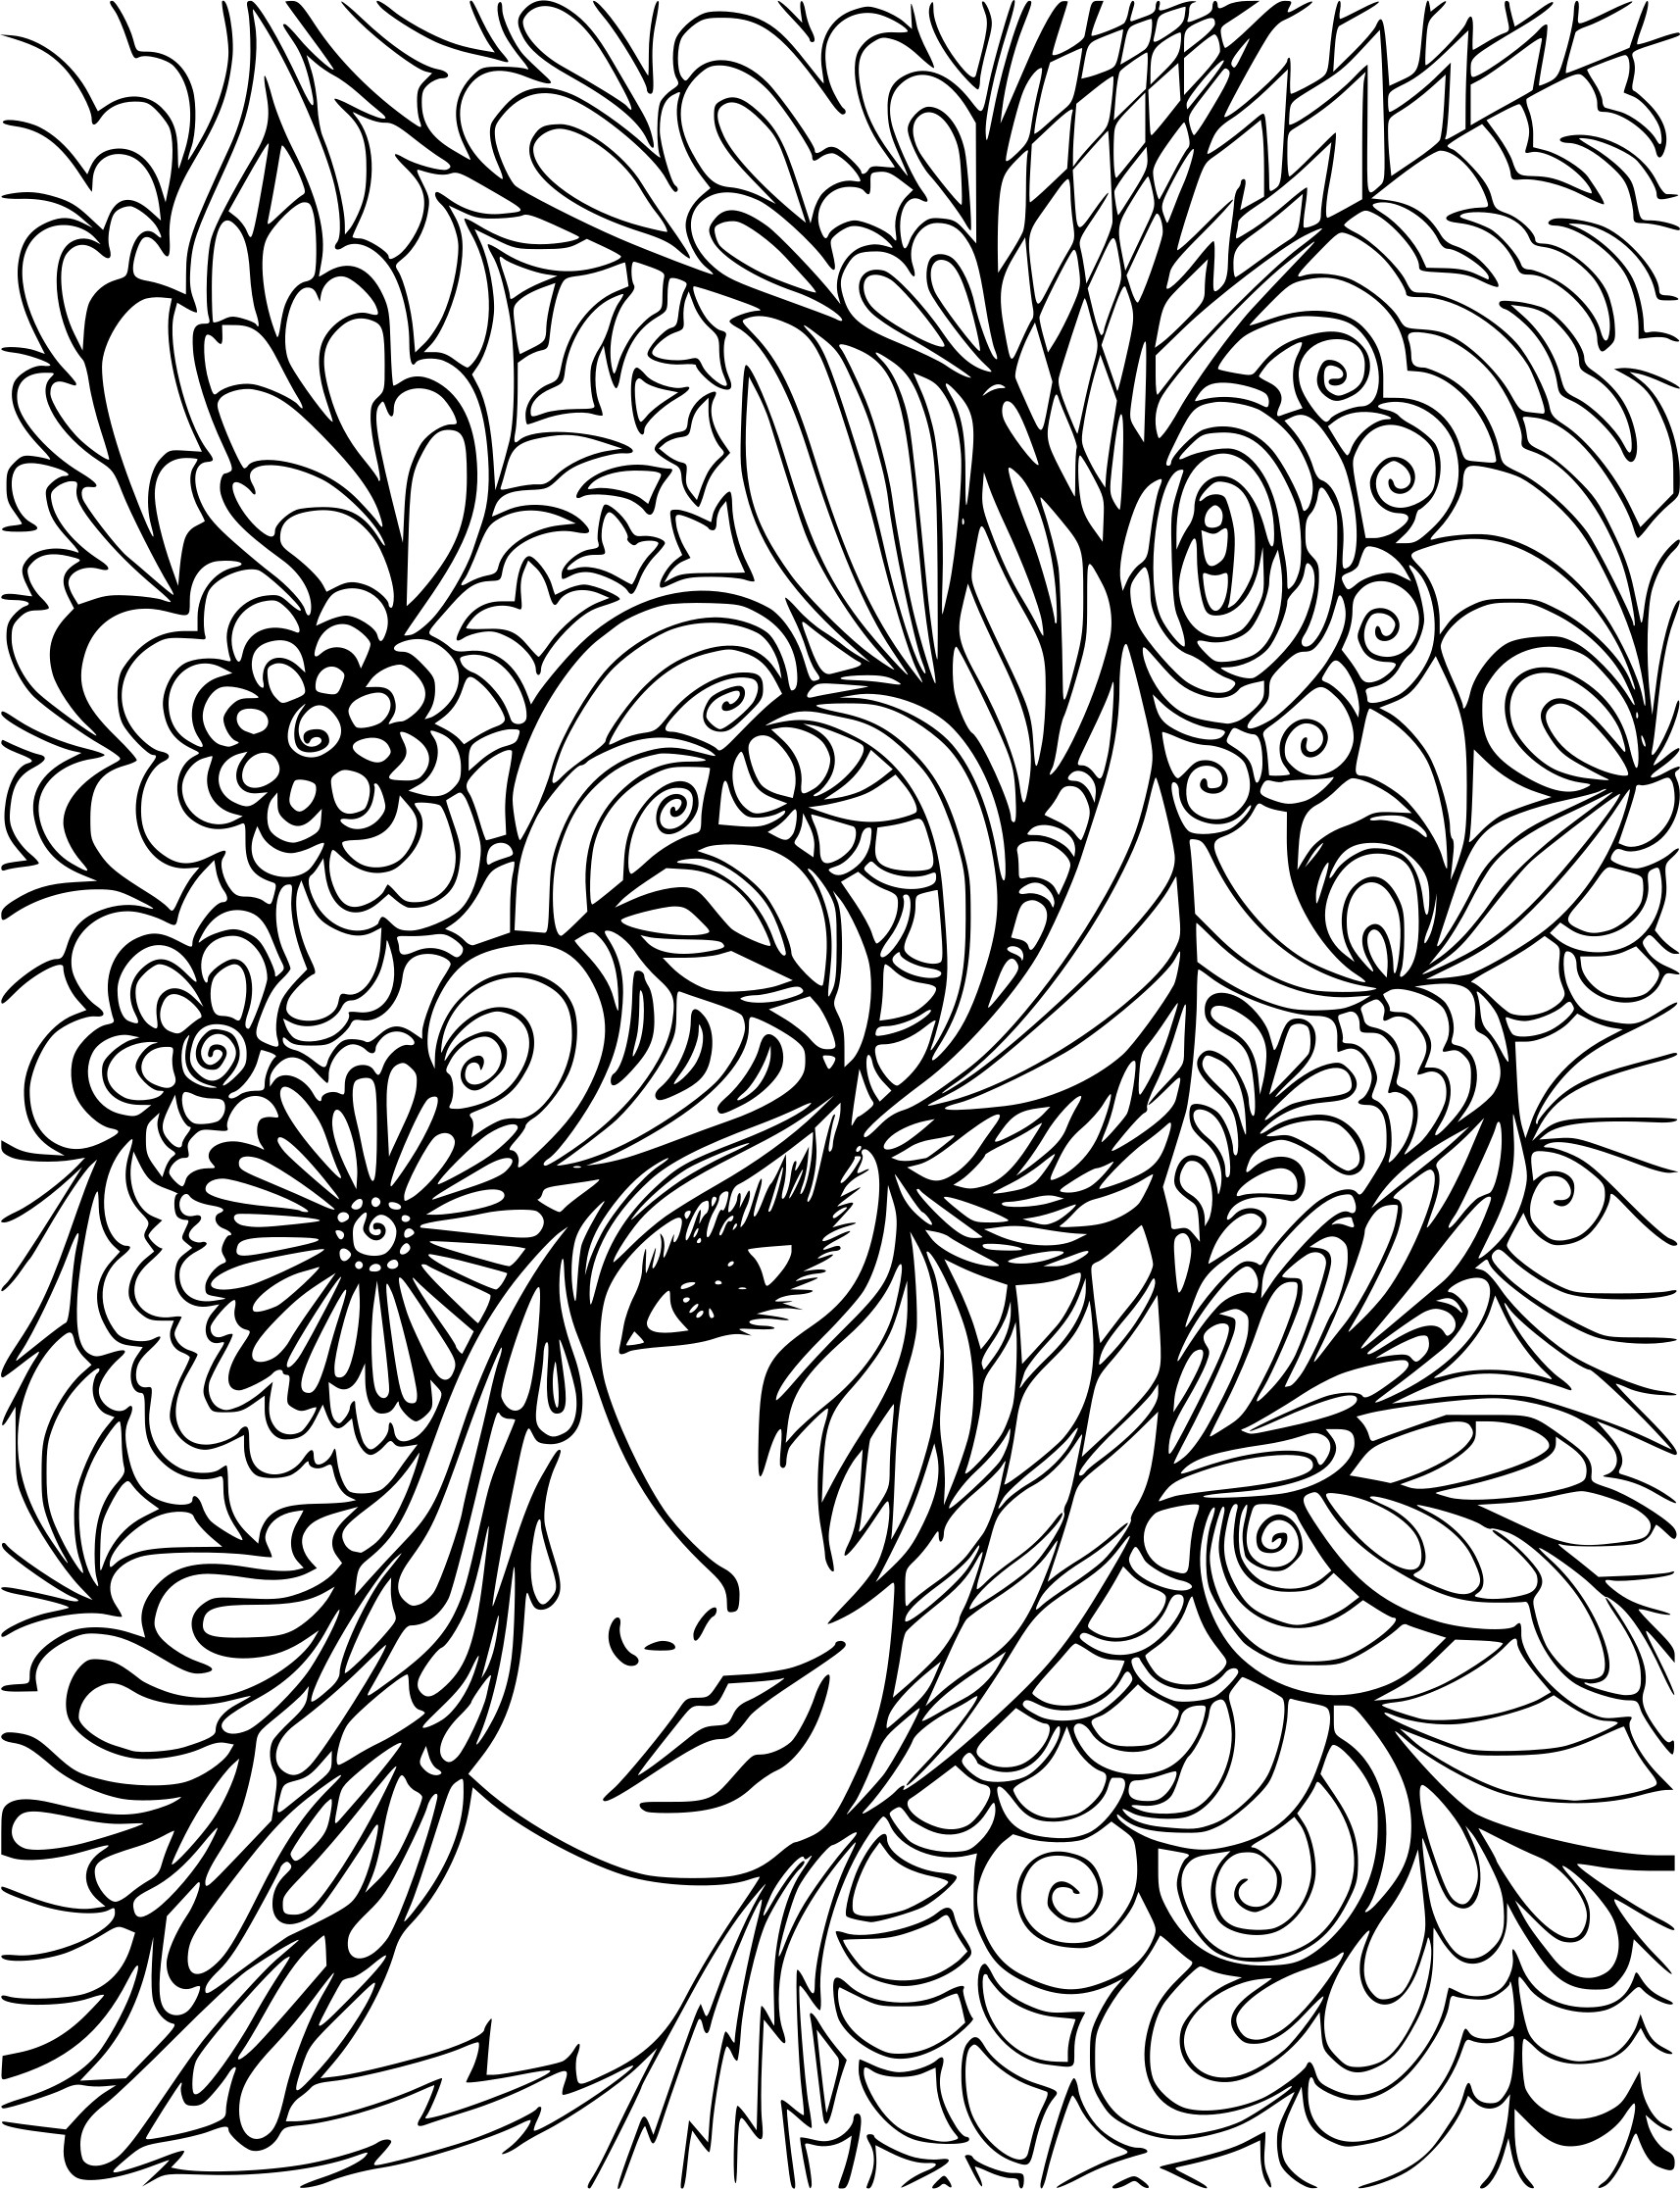 Coloriage anti stress cameleon - Image anti stress ...